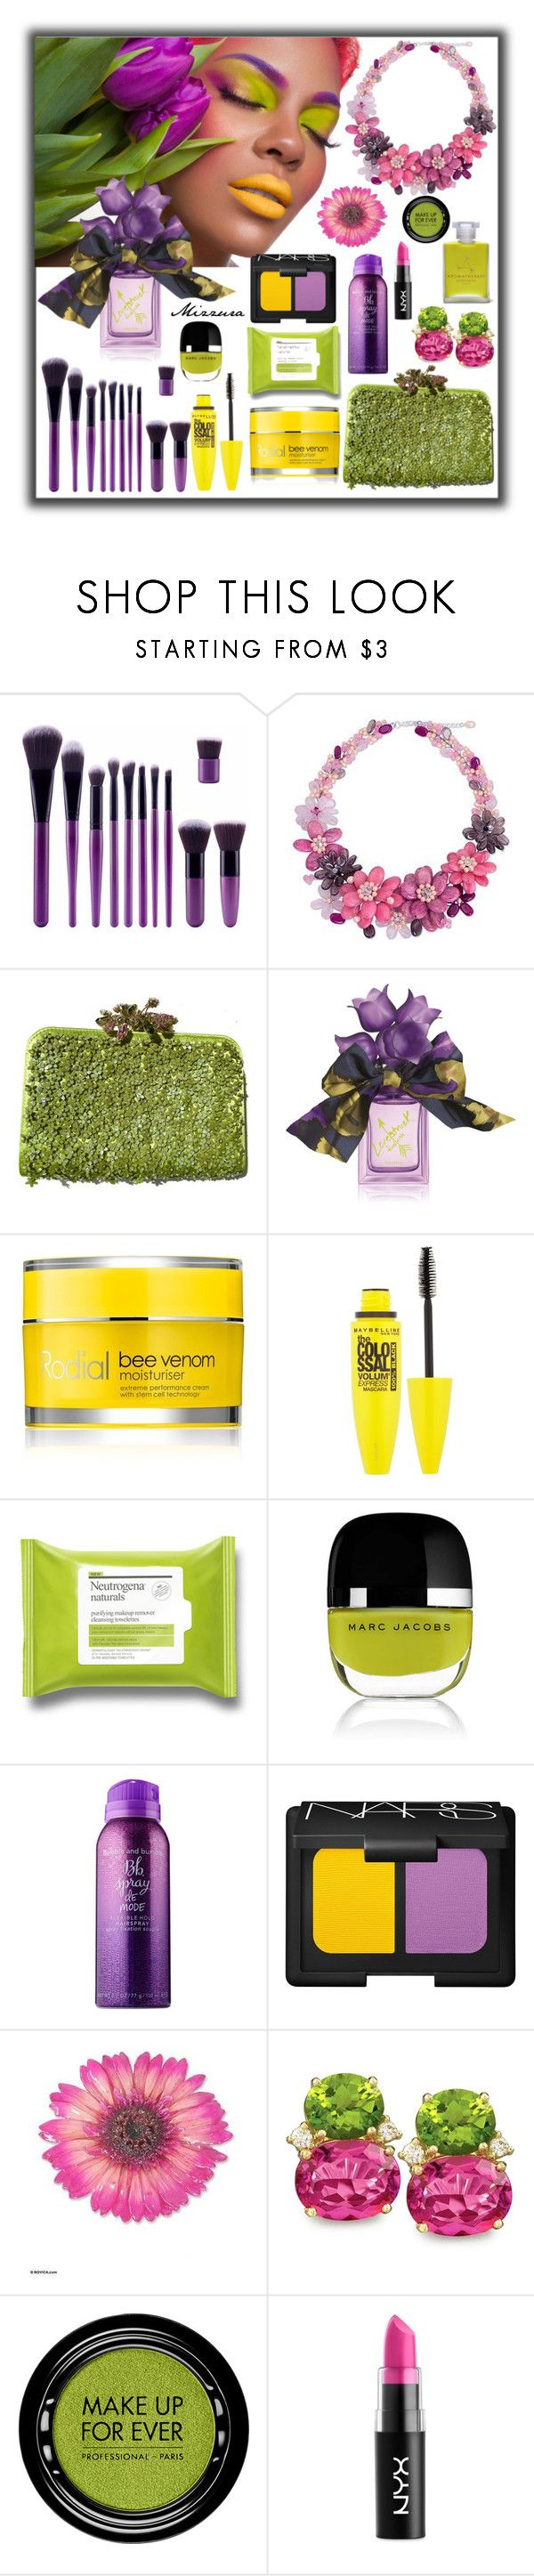 """""""Spring Gifts"""" by mizzura ❤ liked on Polyvore featuring beauty, NOVICA, Valentino, Vera Wang, Rodial, Maybelline, Marc Jacobs, Bumble and bumble, NARS Cosmetics and MAKE UP FOR EVER"""